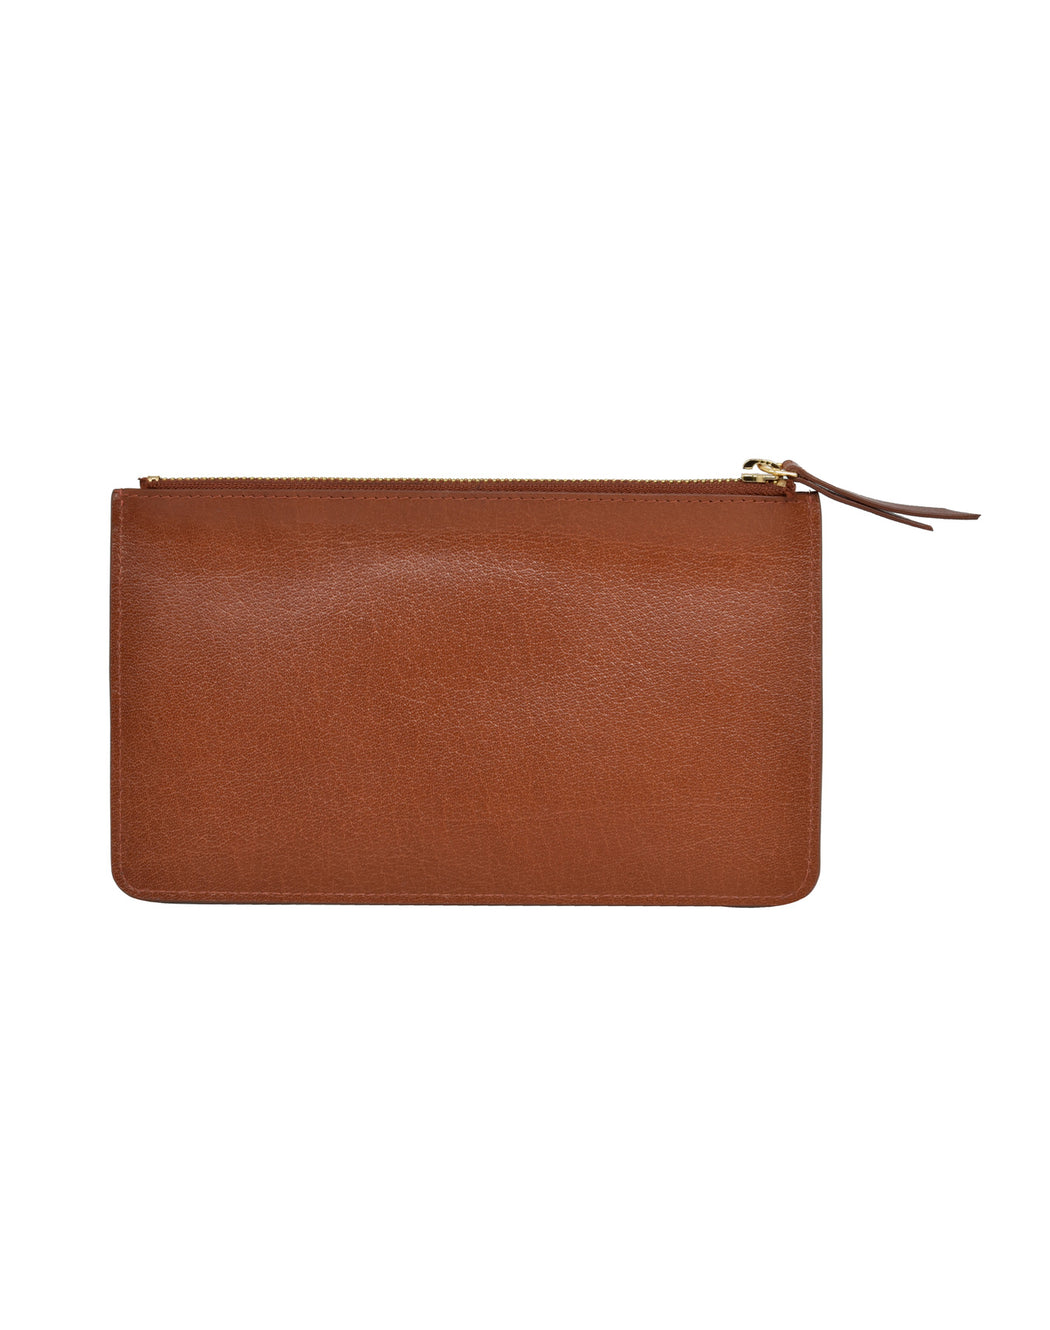 Terro Miel Leather Purse